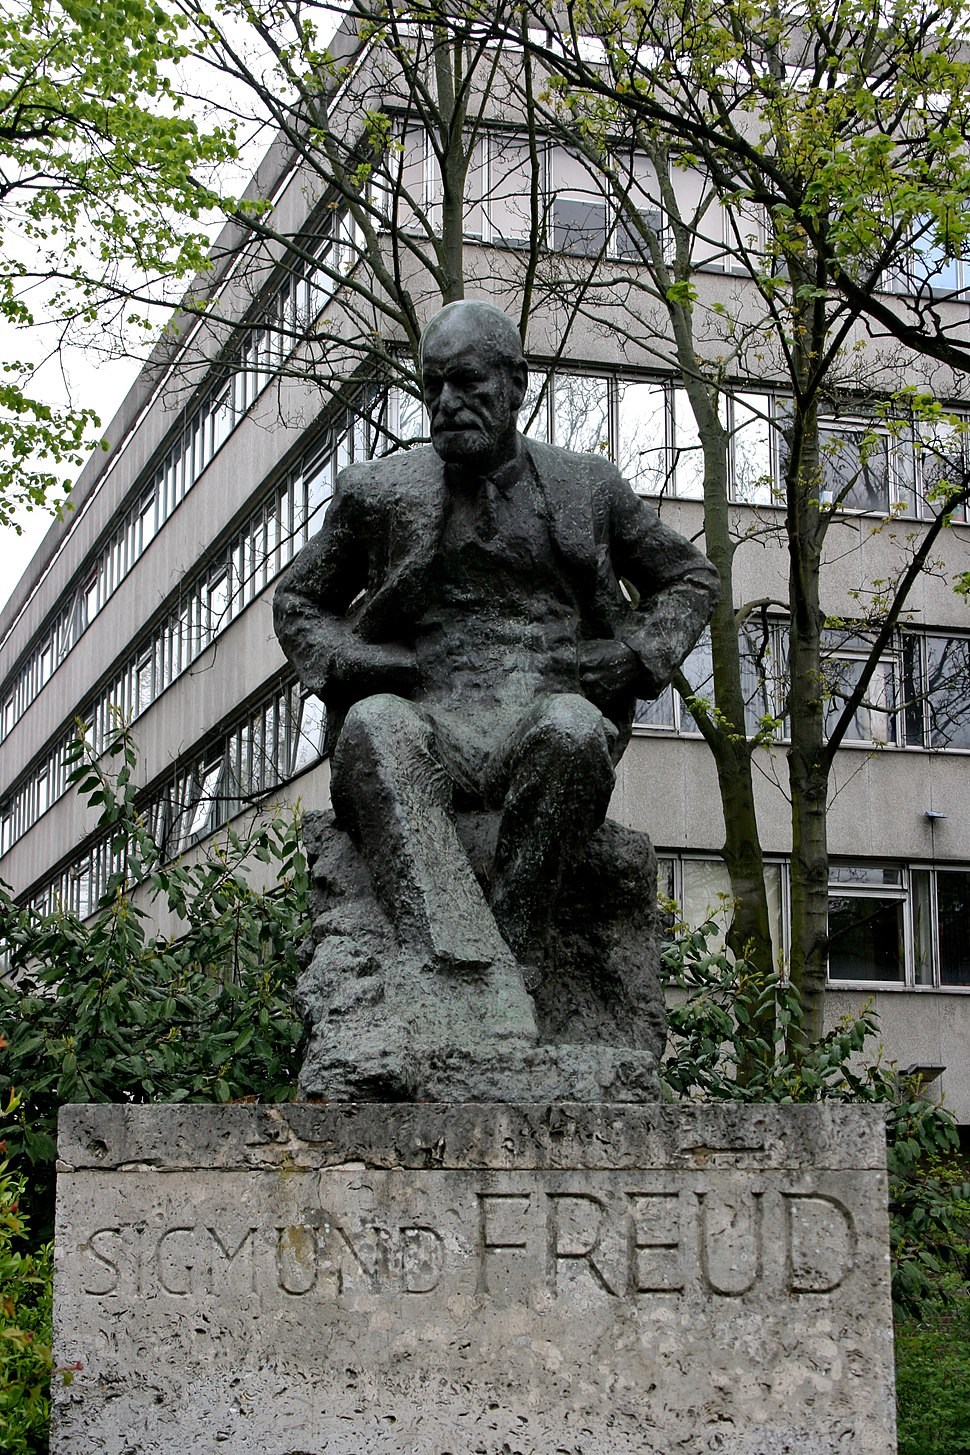 Sigmund Freud statue, London 1